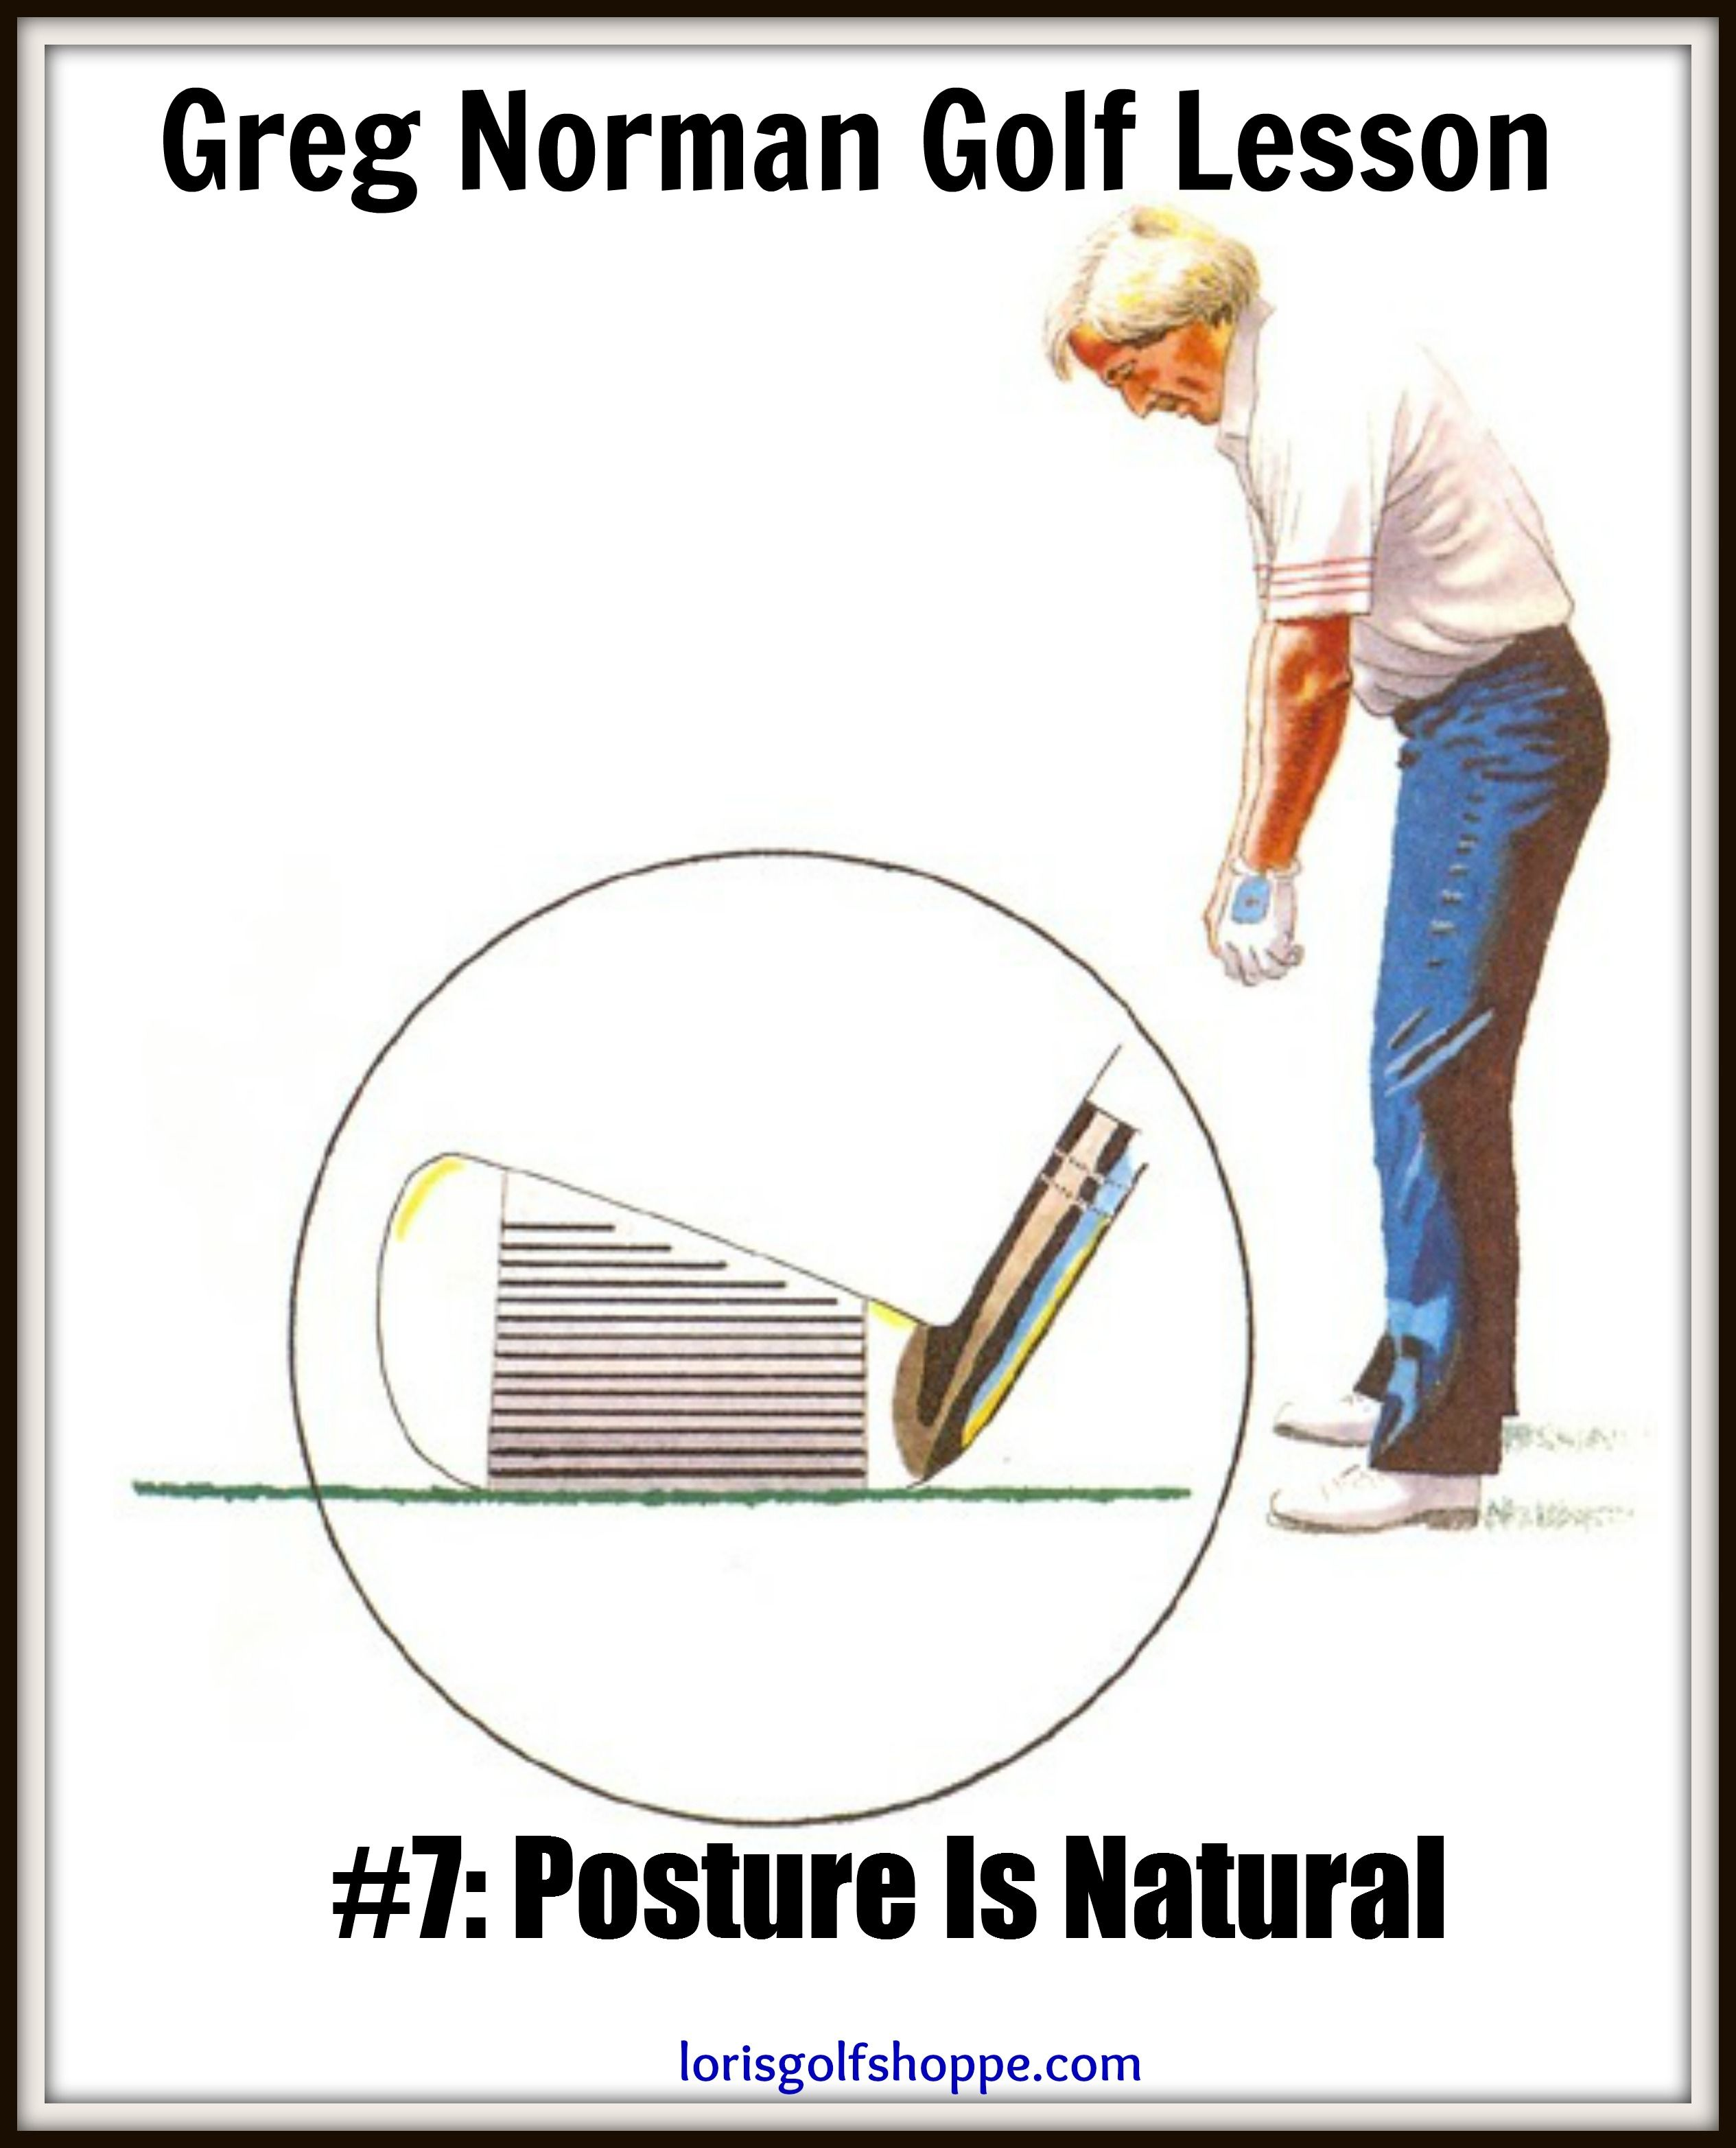 There S No Need To Agonize Over Getting The Ideal Position At Address Here S A Simple Way To Find It Without A Club Golf Lessons Greg Norman Golf Golf Room